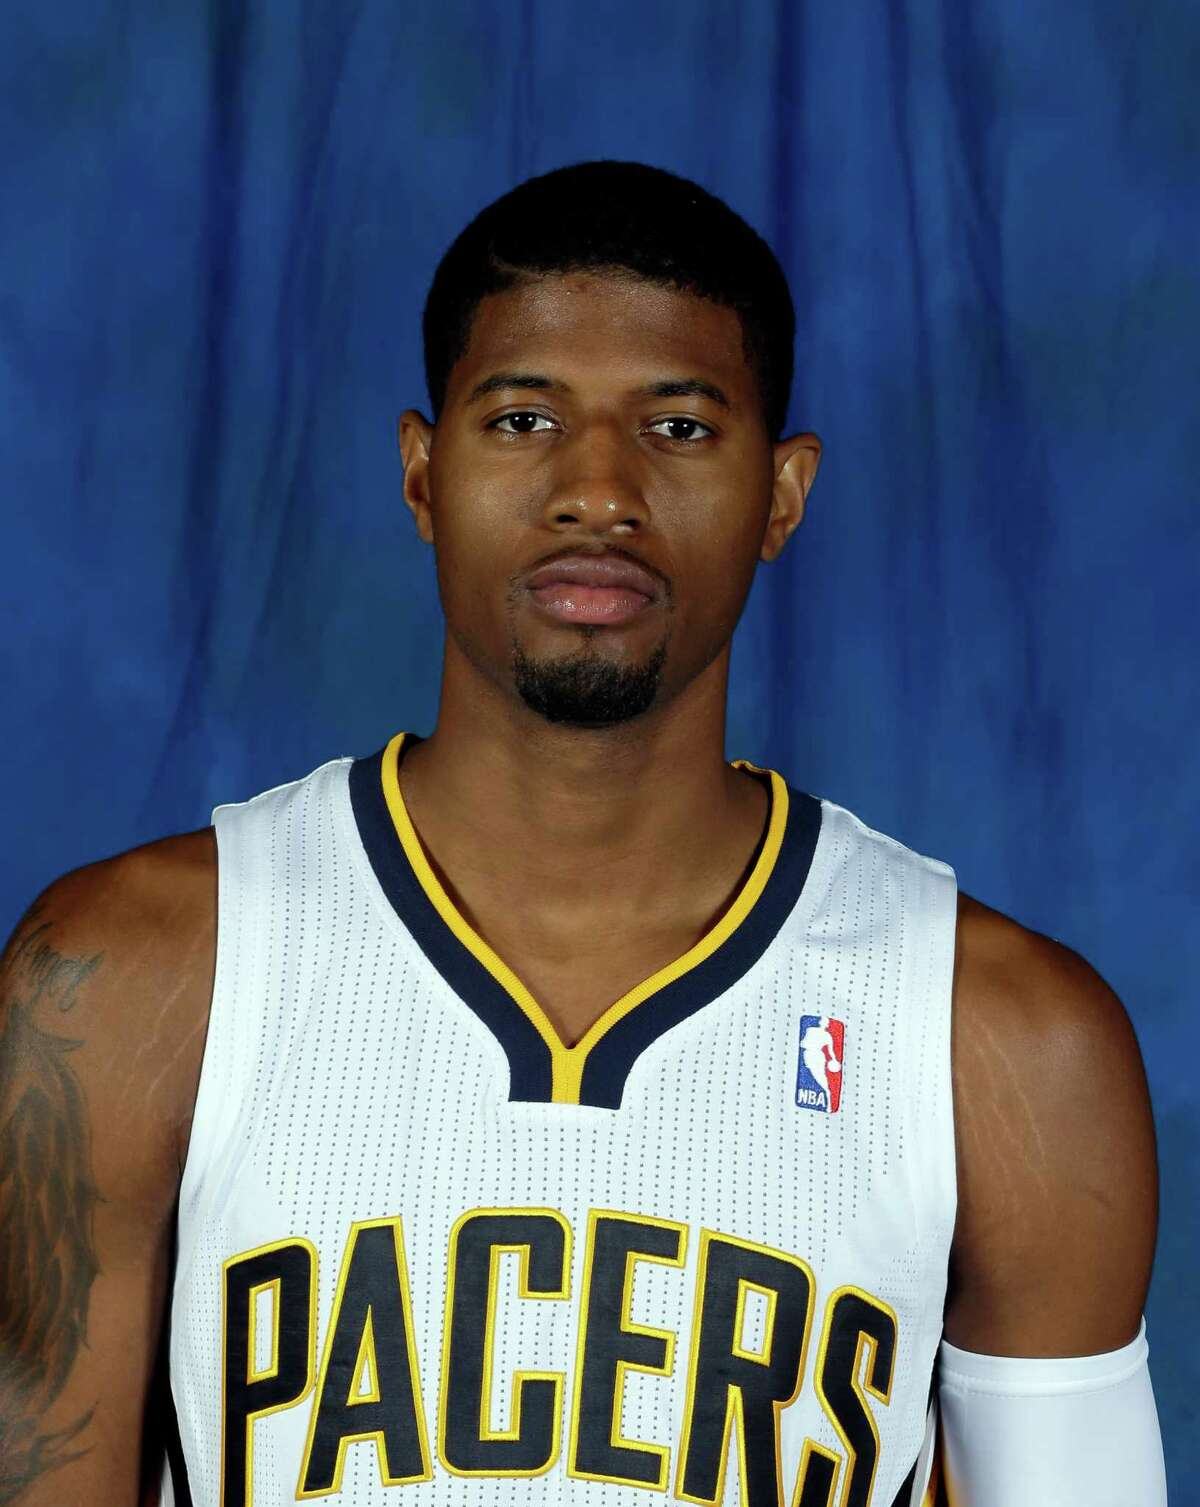 Indiana Pacers' Paul George poses for a photograph during NBA basketball media day Friday, Sept. 27, 2013, in Indianapolis. (AP Photo/Darron Cummings)